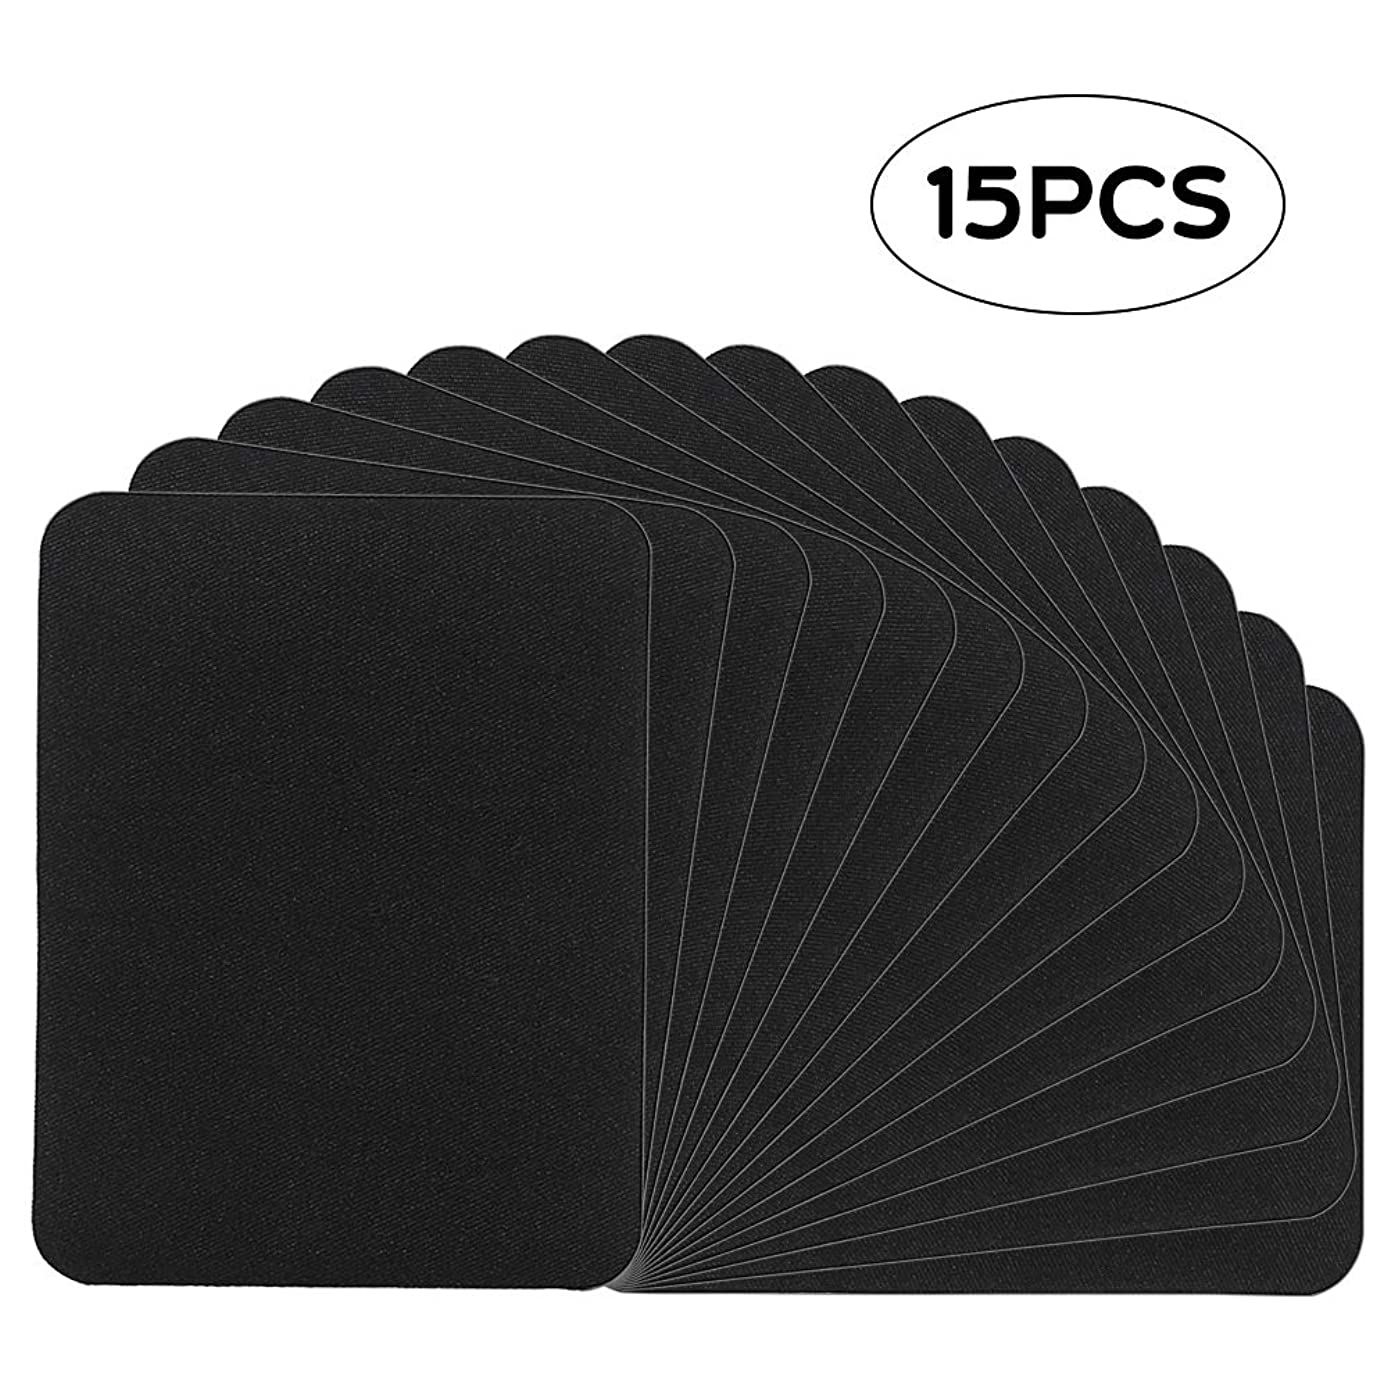 Cocoboo 15pcs Iron on Patches Black Fabric Repair Kit for Clothes, Jeans, Jackets 4.9